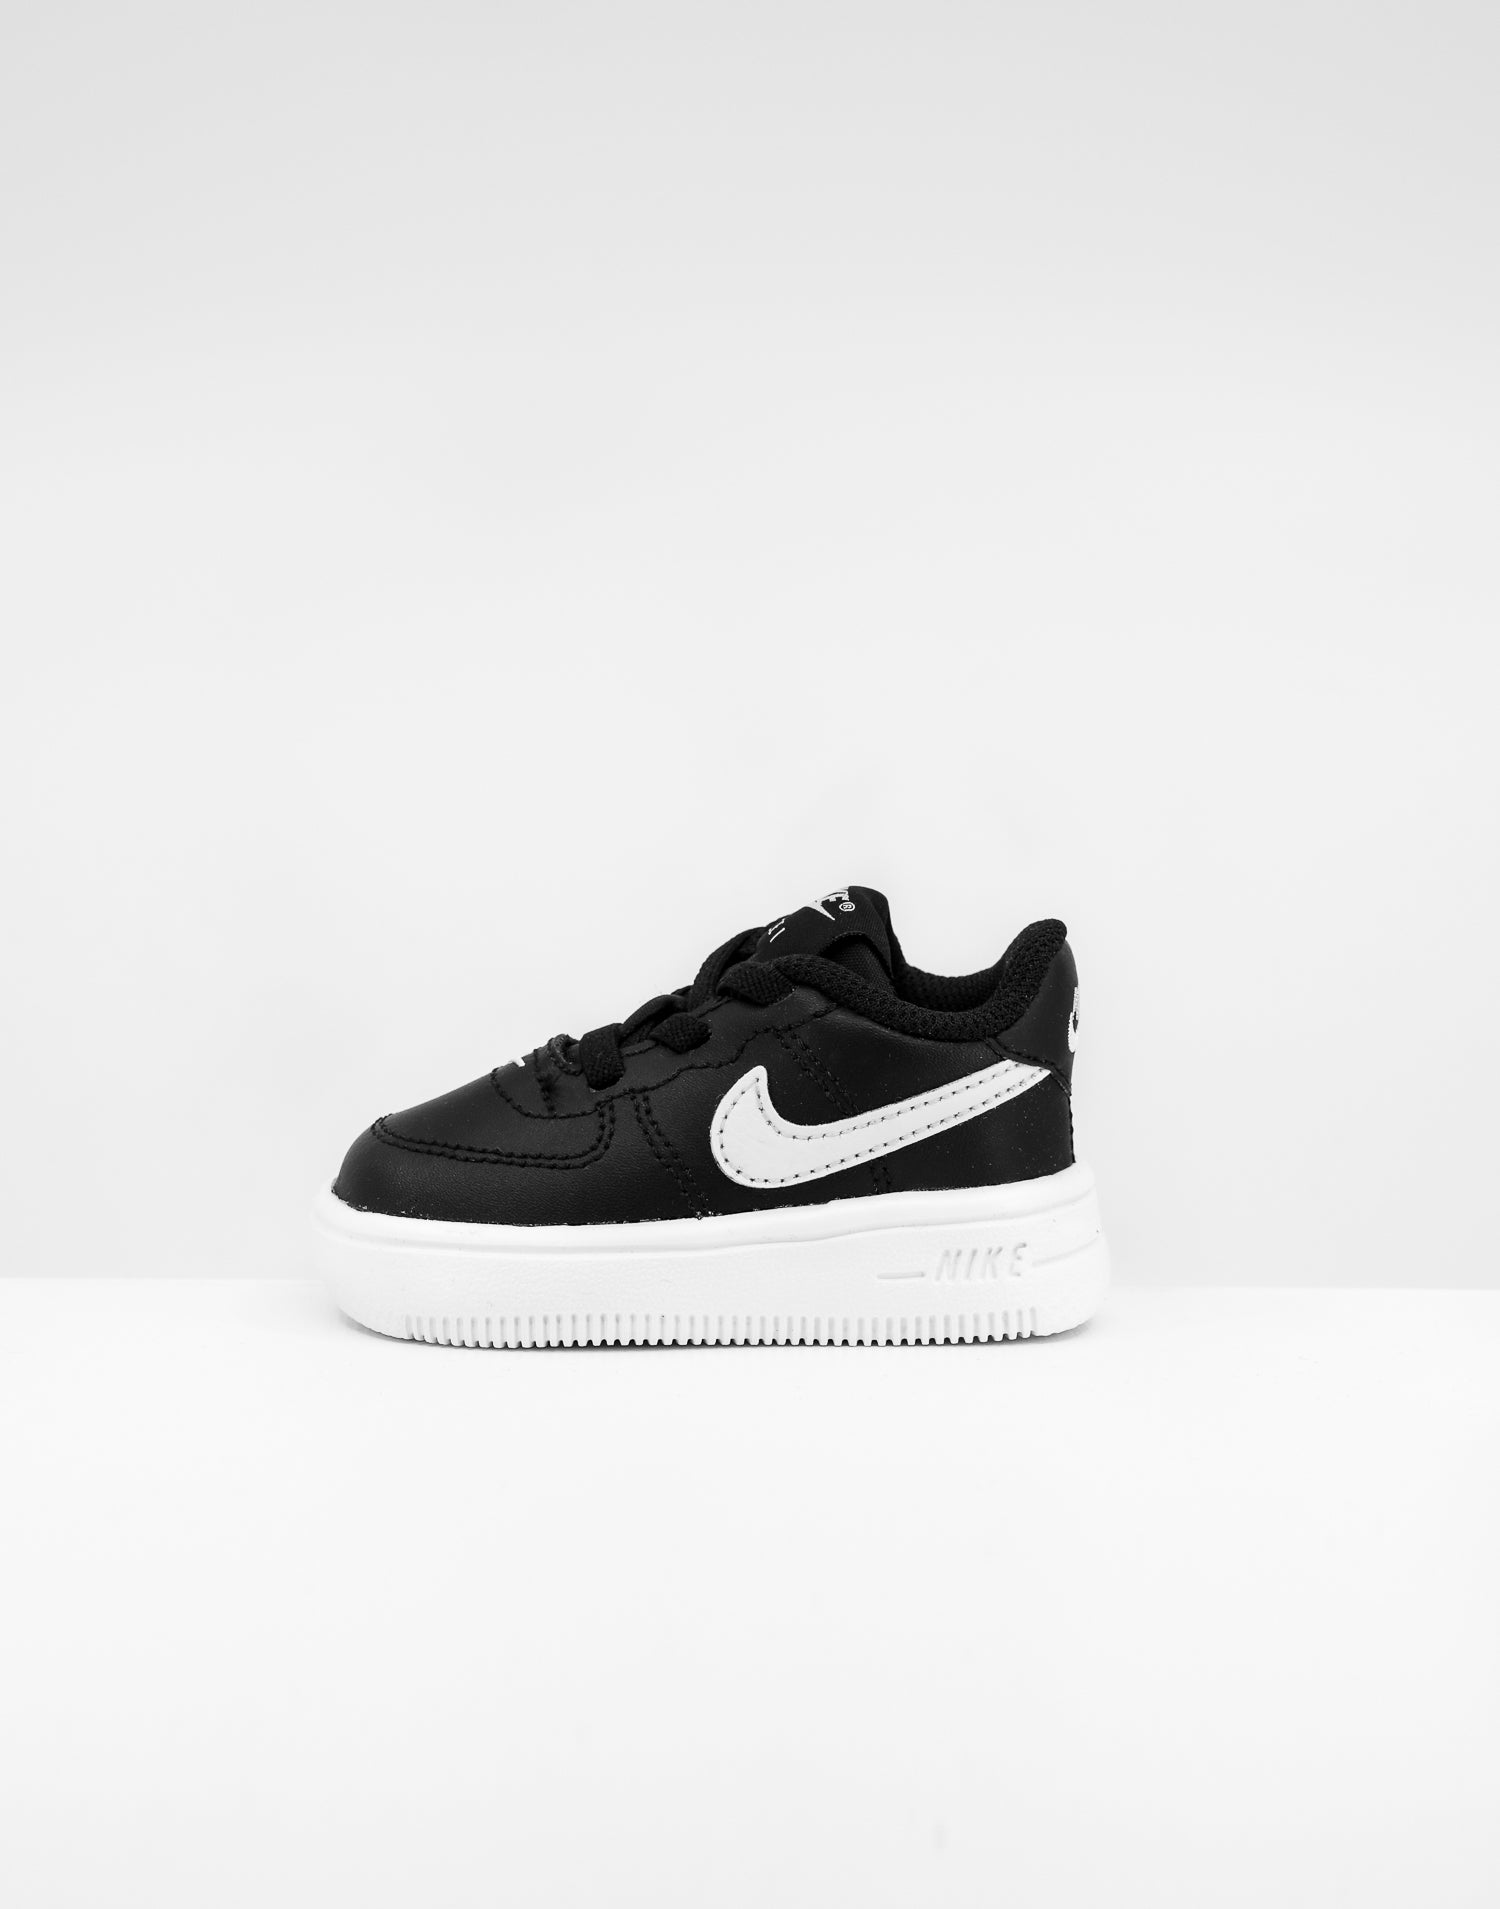 Nike Toddler Air Force 1 '18 BlackWhite